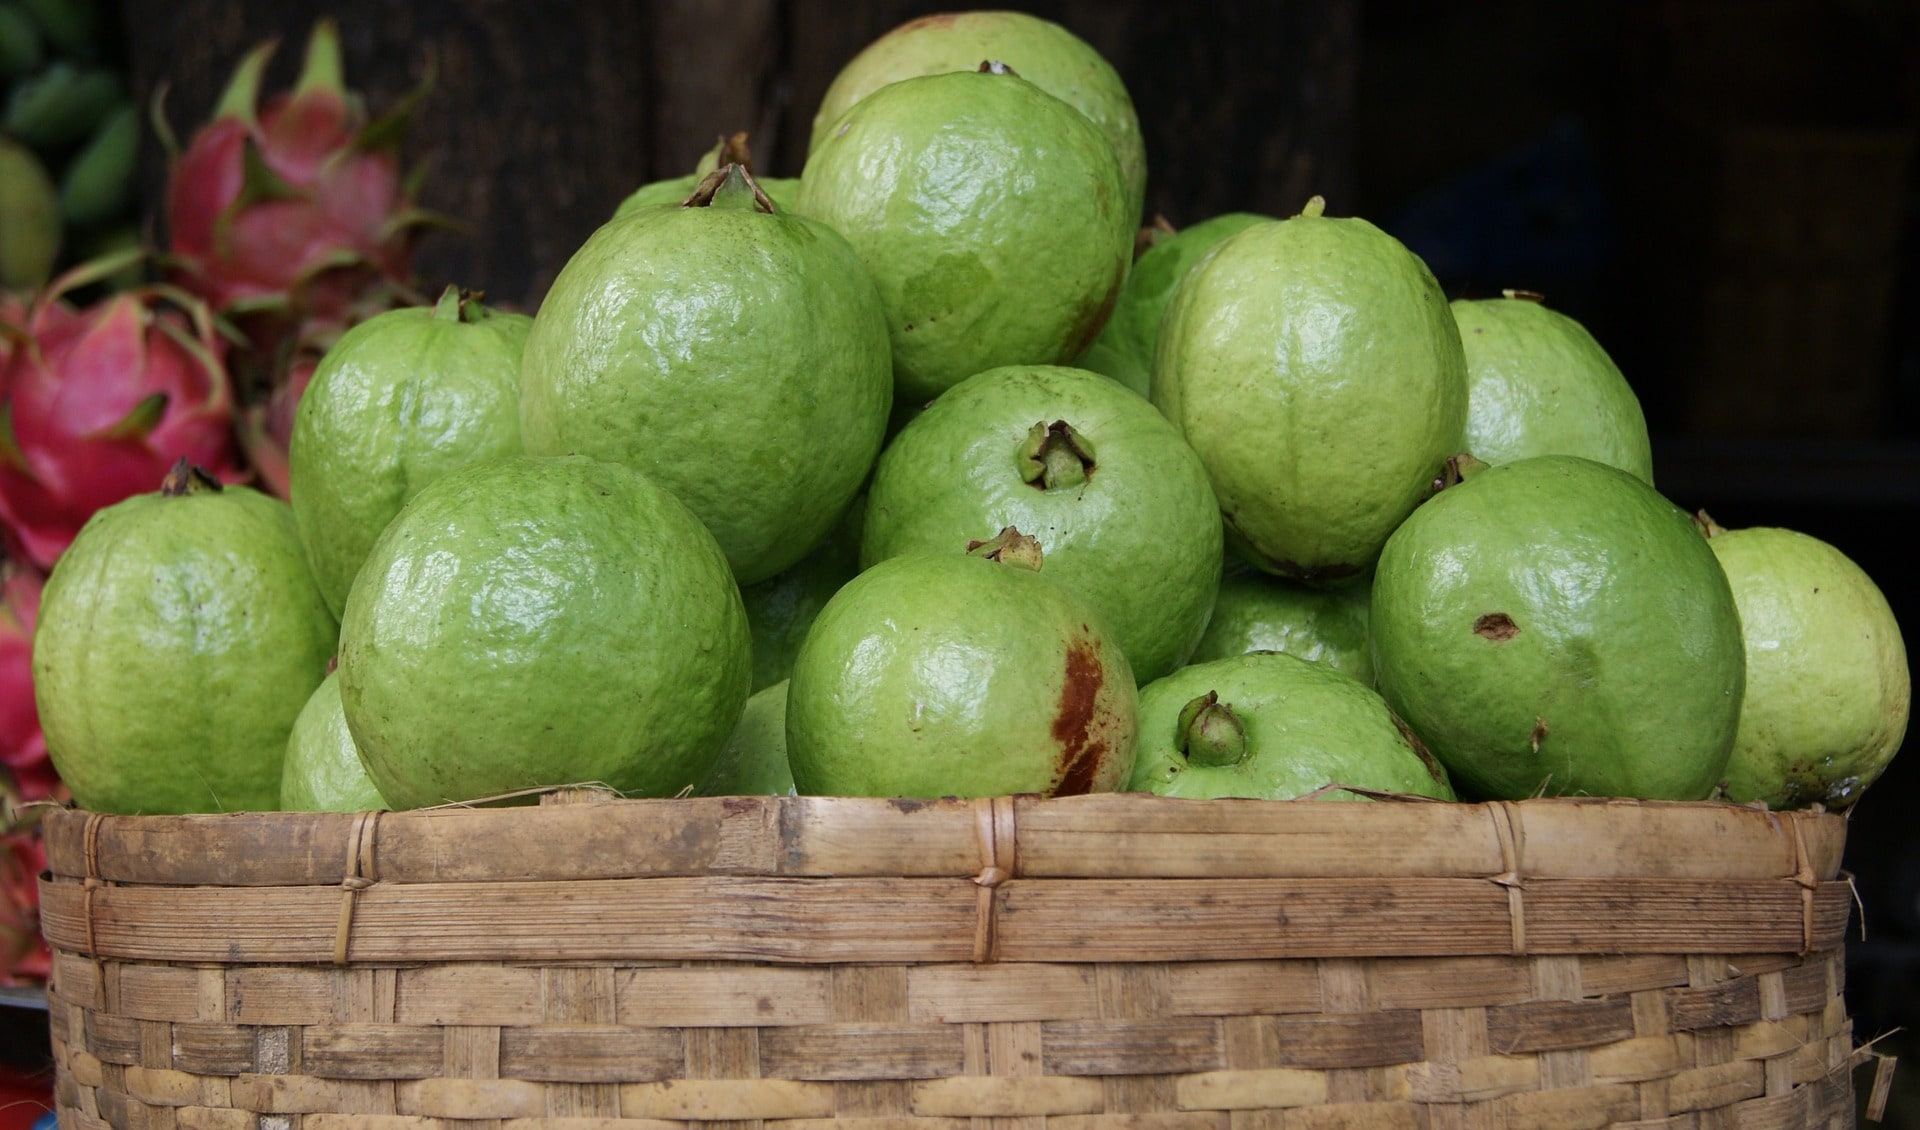 Nutrients Rich Food: What Is The Health Benefits Of Guava Fruit And Leaves? Guava Benefits For Acidity, And Stomachache